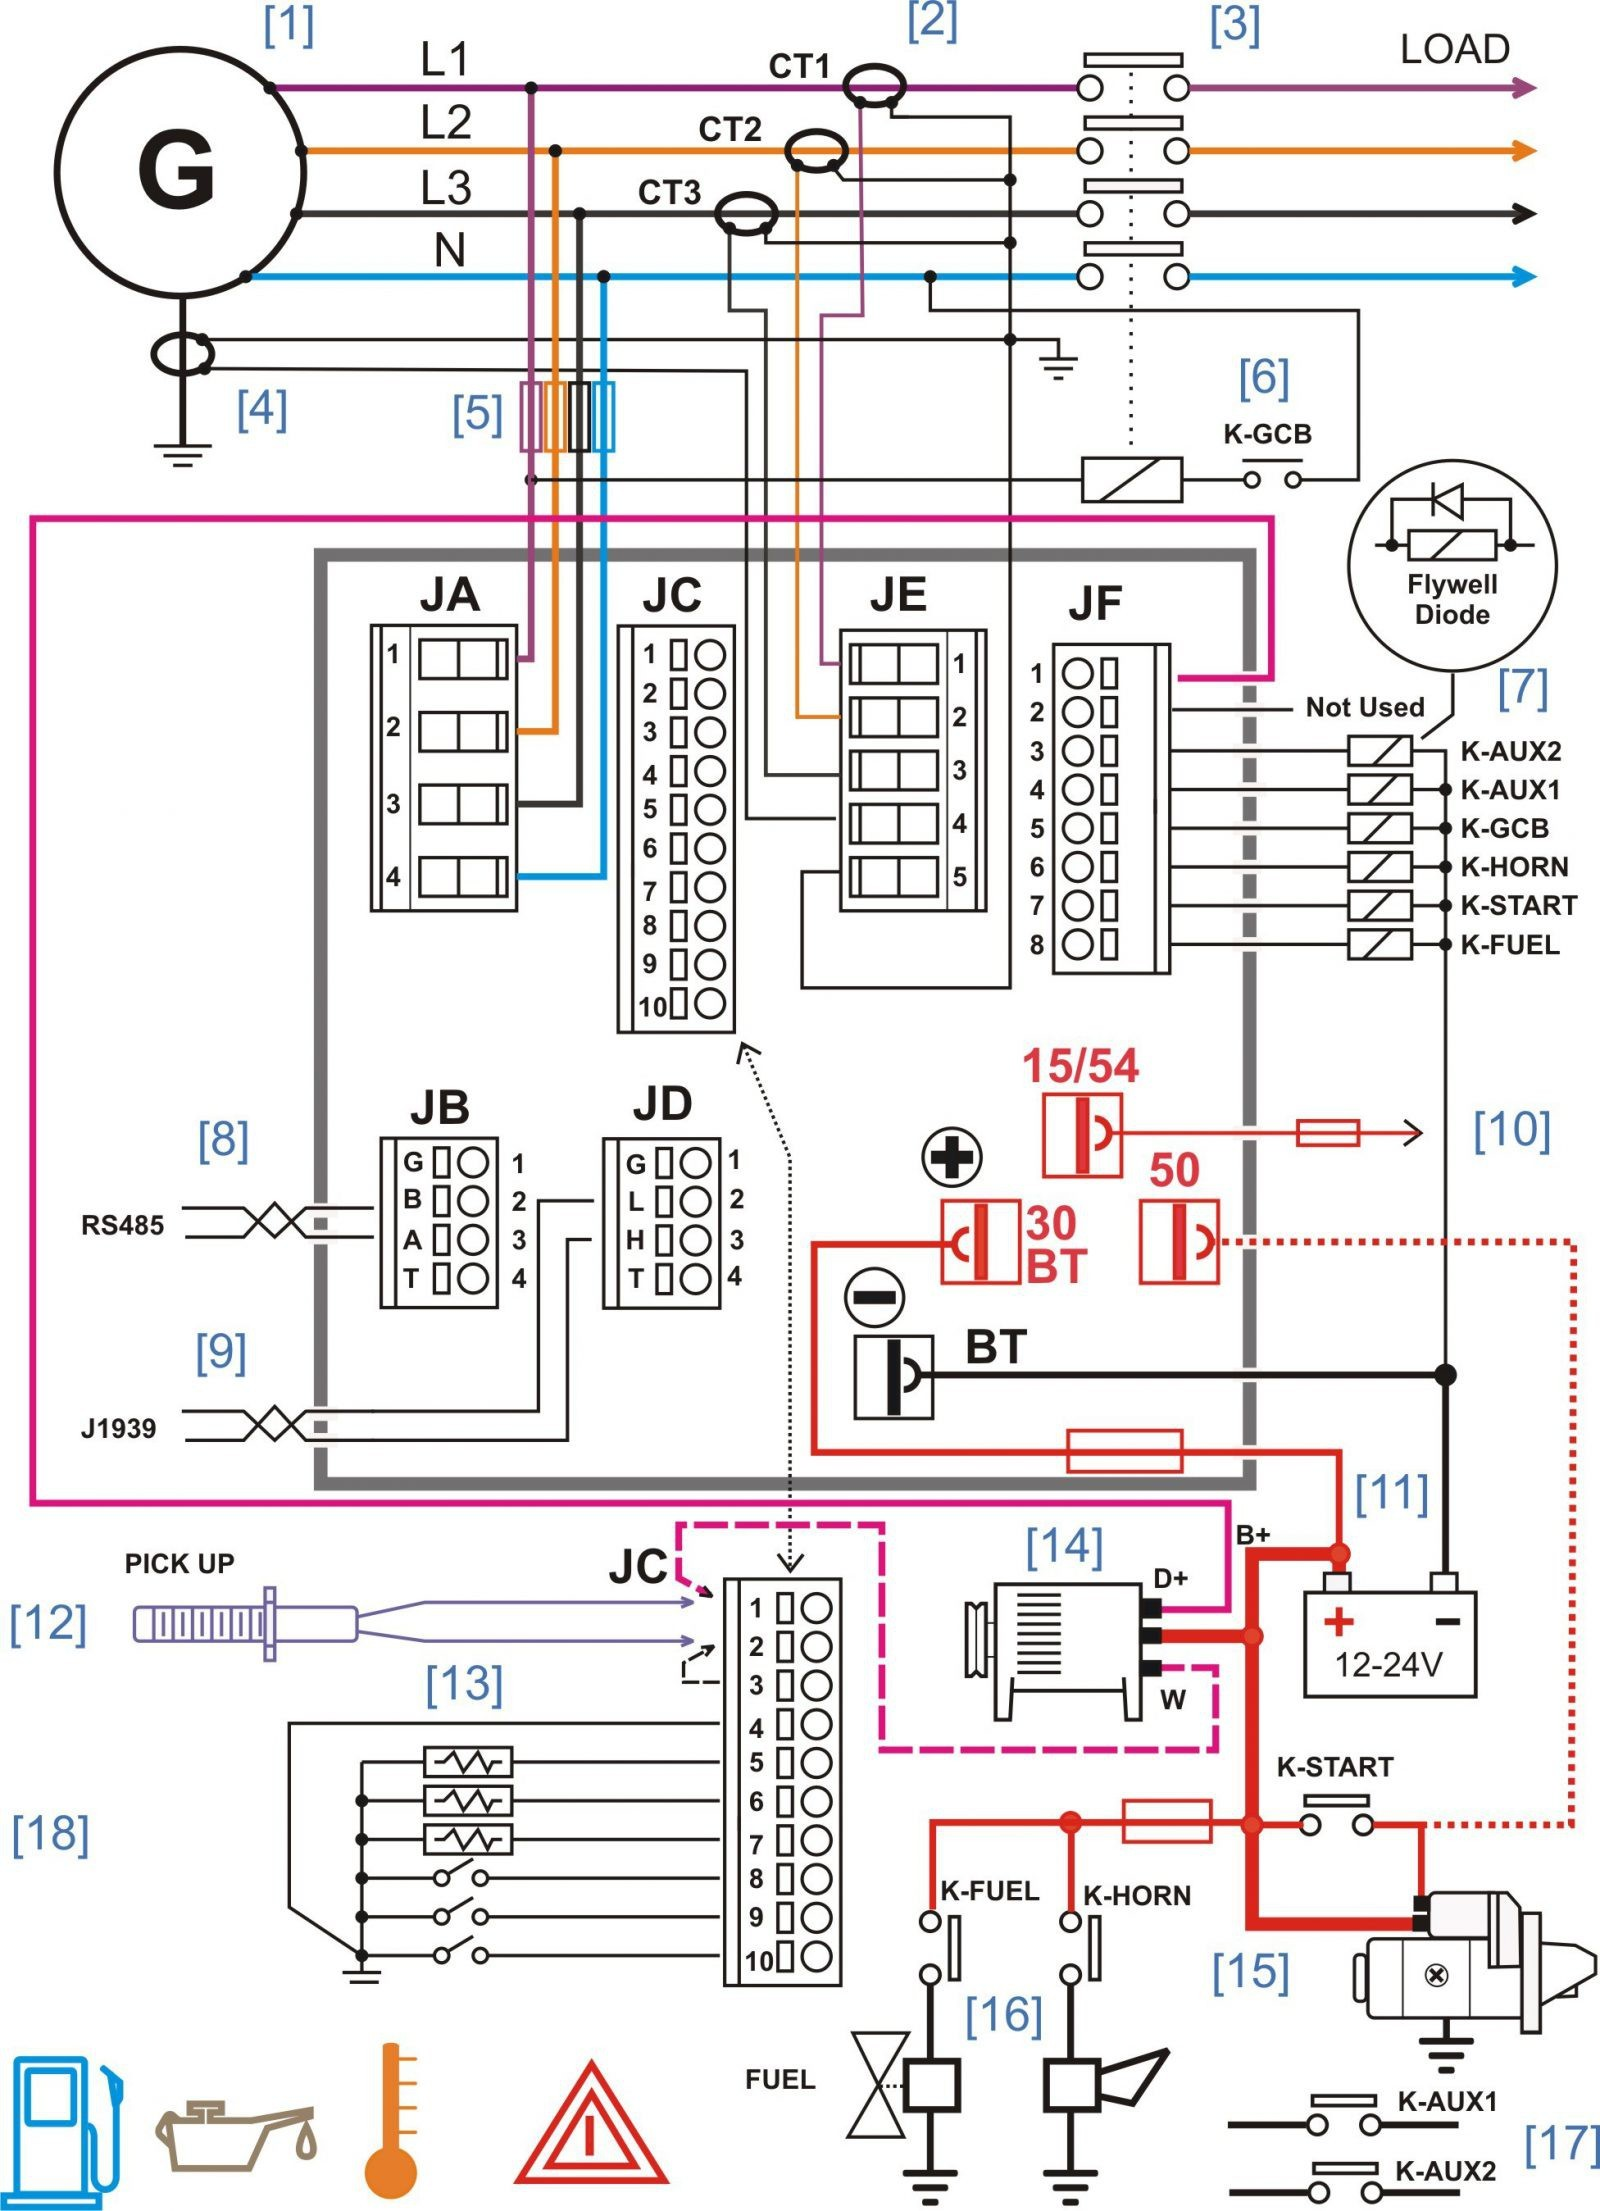 Wiring diagram for a jvc car stereo my wiring diagram car radio wiring diagram kenwood stereo kdc 210u within in delphi delco part number and asfbconference2016 Gallery